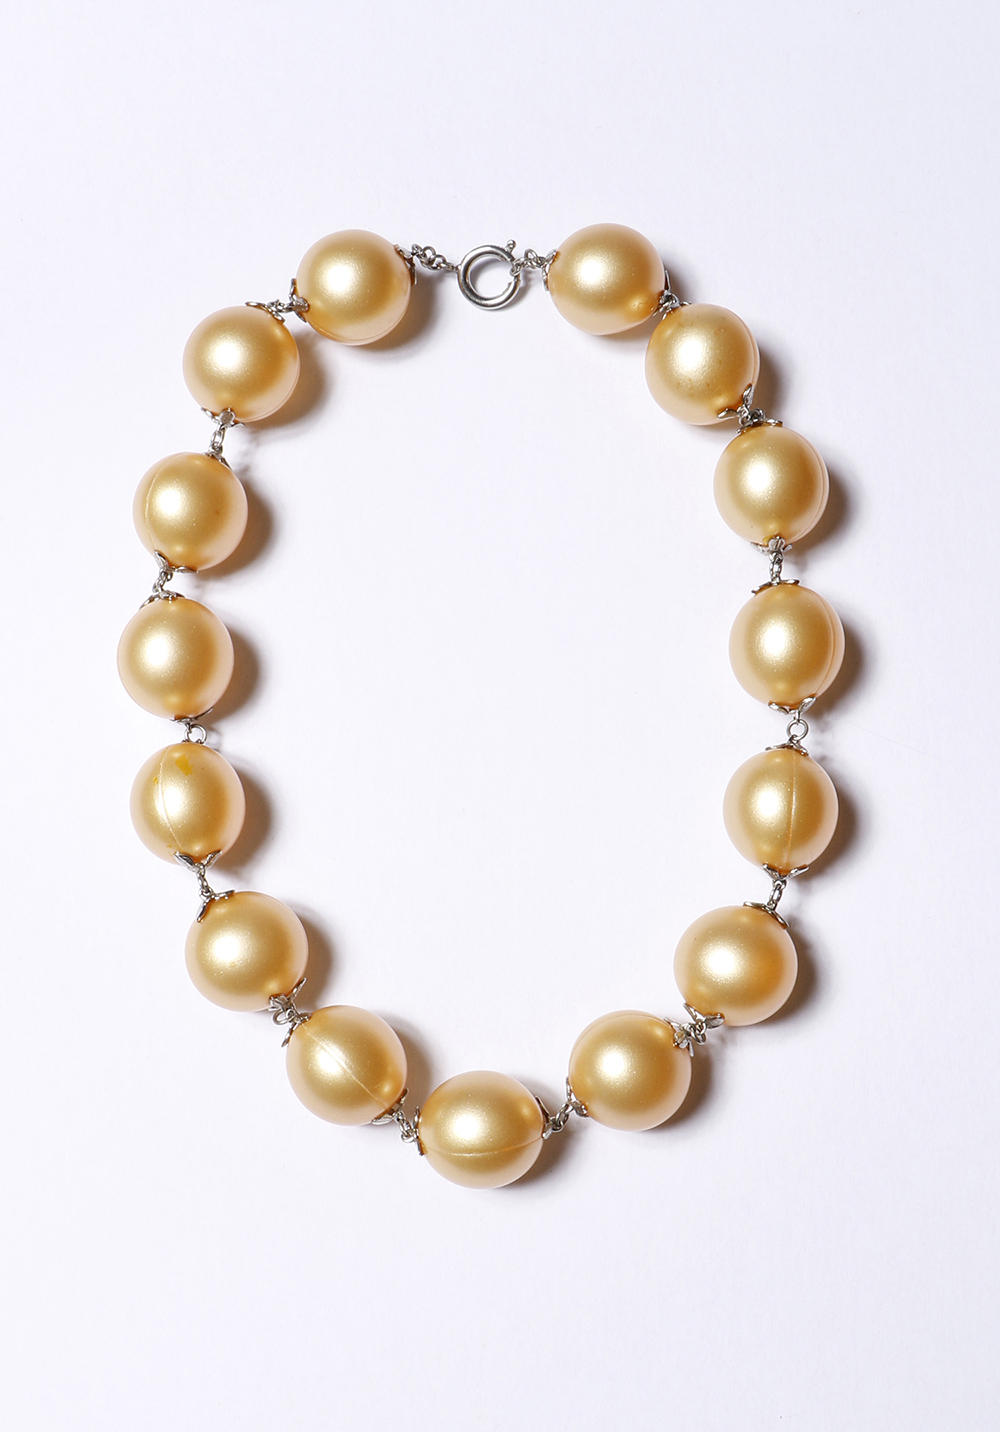 Pearl necklace 2002<div style='clear:both;width:100%;height:0px;'></div><span class='desc'>Size: 6 x 4,5 x 0,5 inch <br>Material: Bath pearls, steel <br>Photo: Cissie van der Ven <br>27 in Private Collection (edition 35)</span>